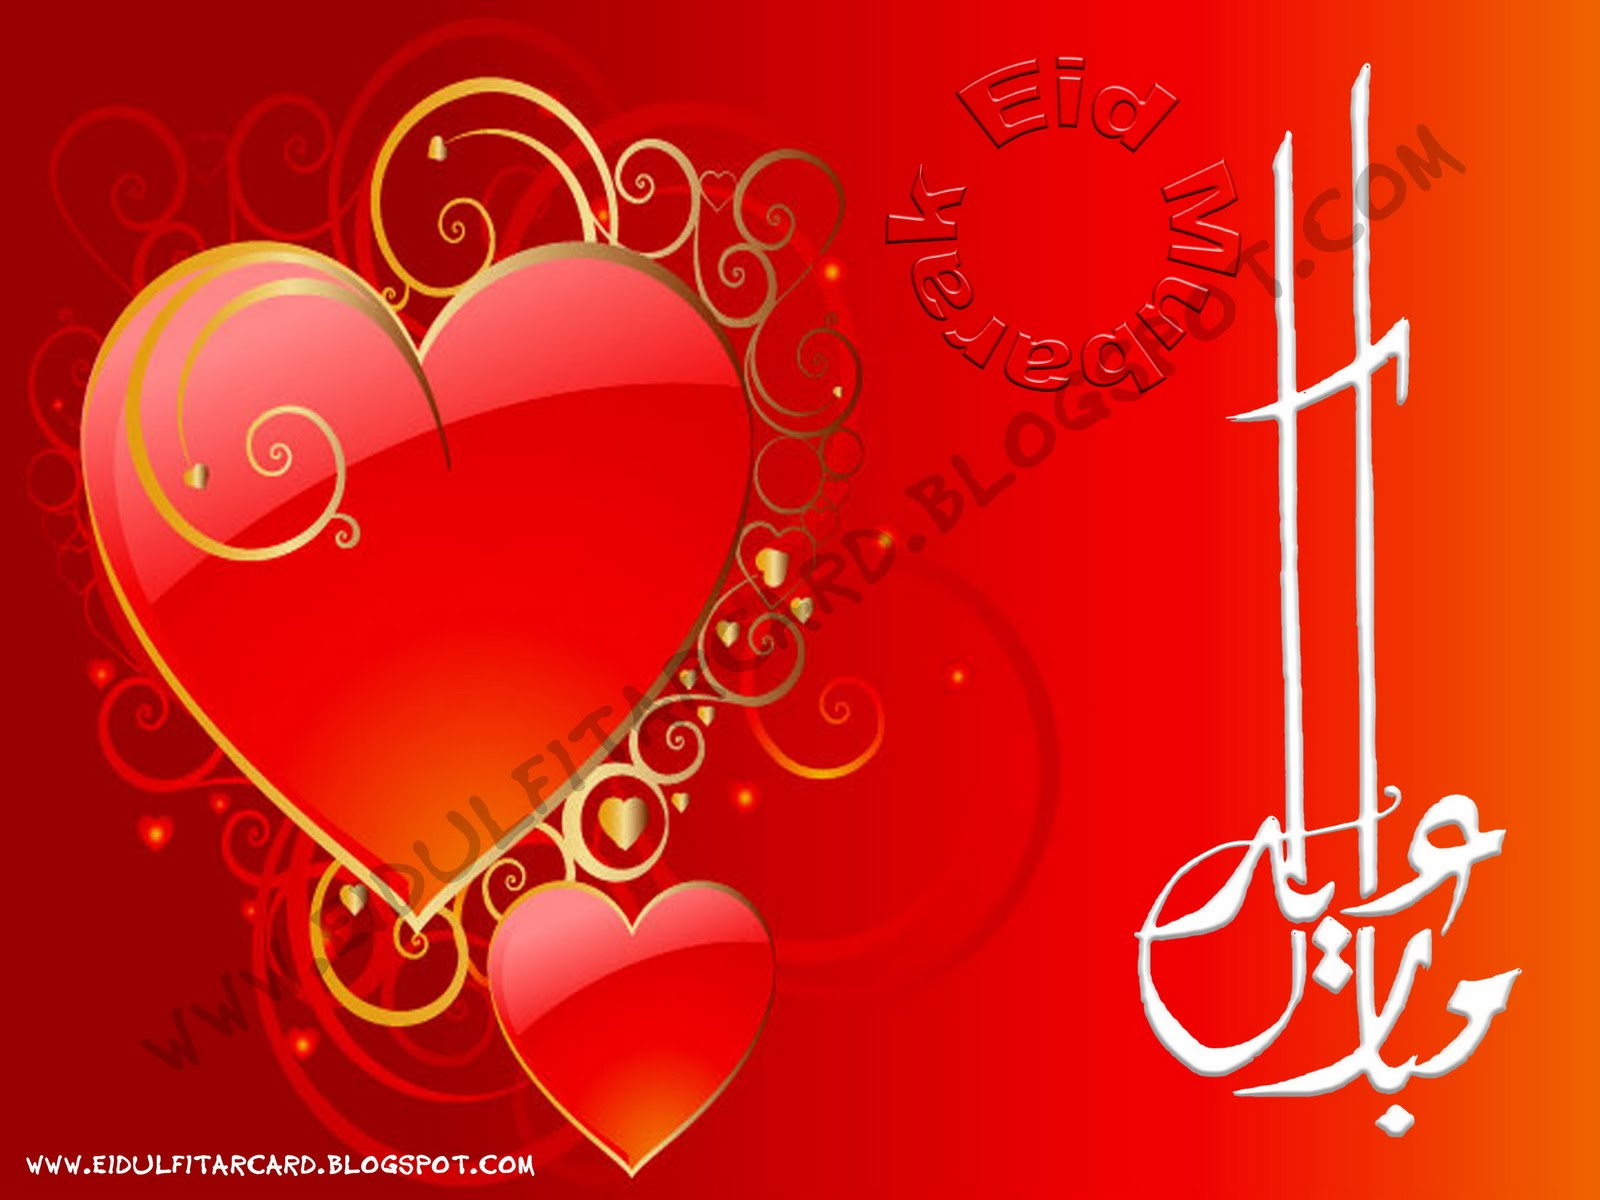 cardswho gave you happines on your face eid card 73